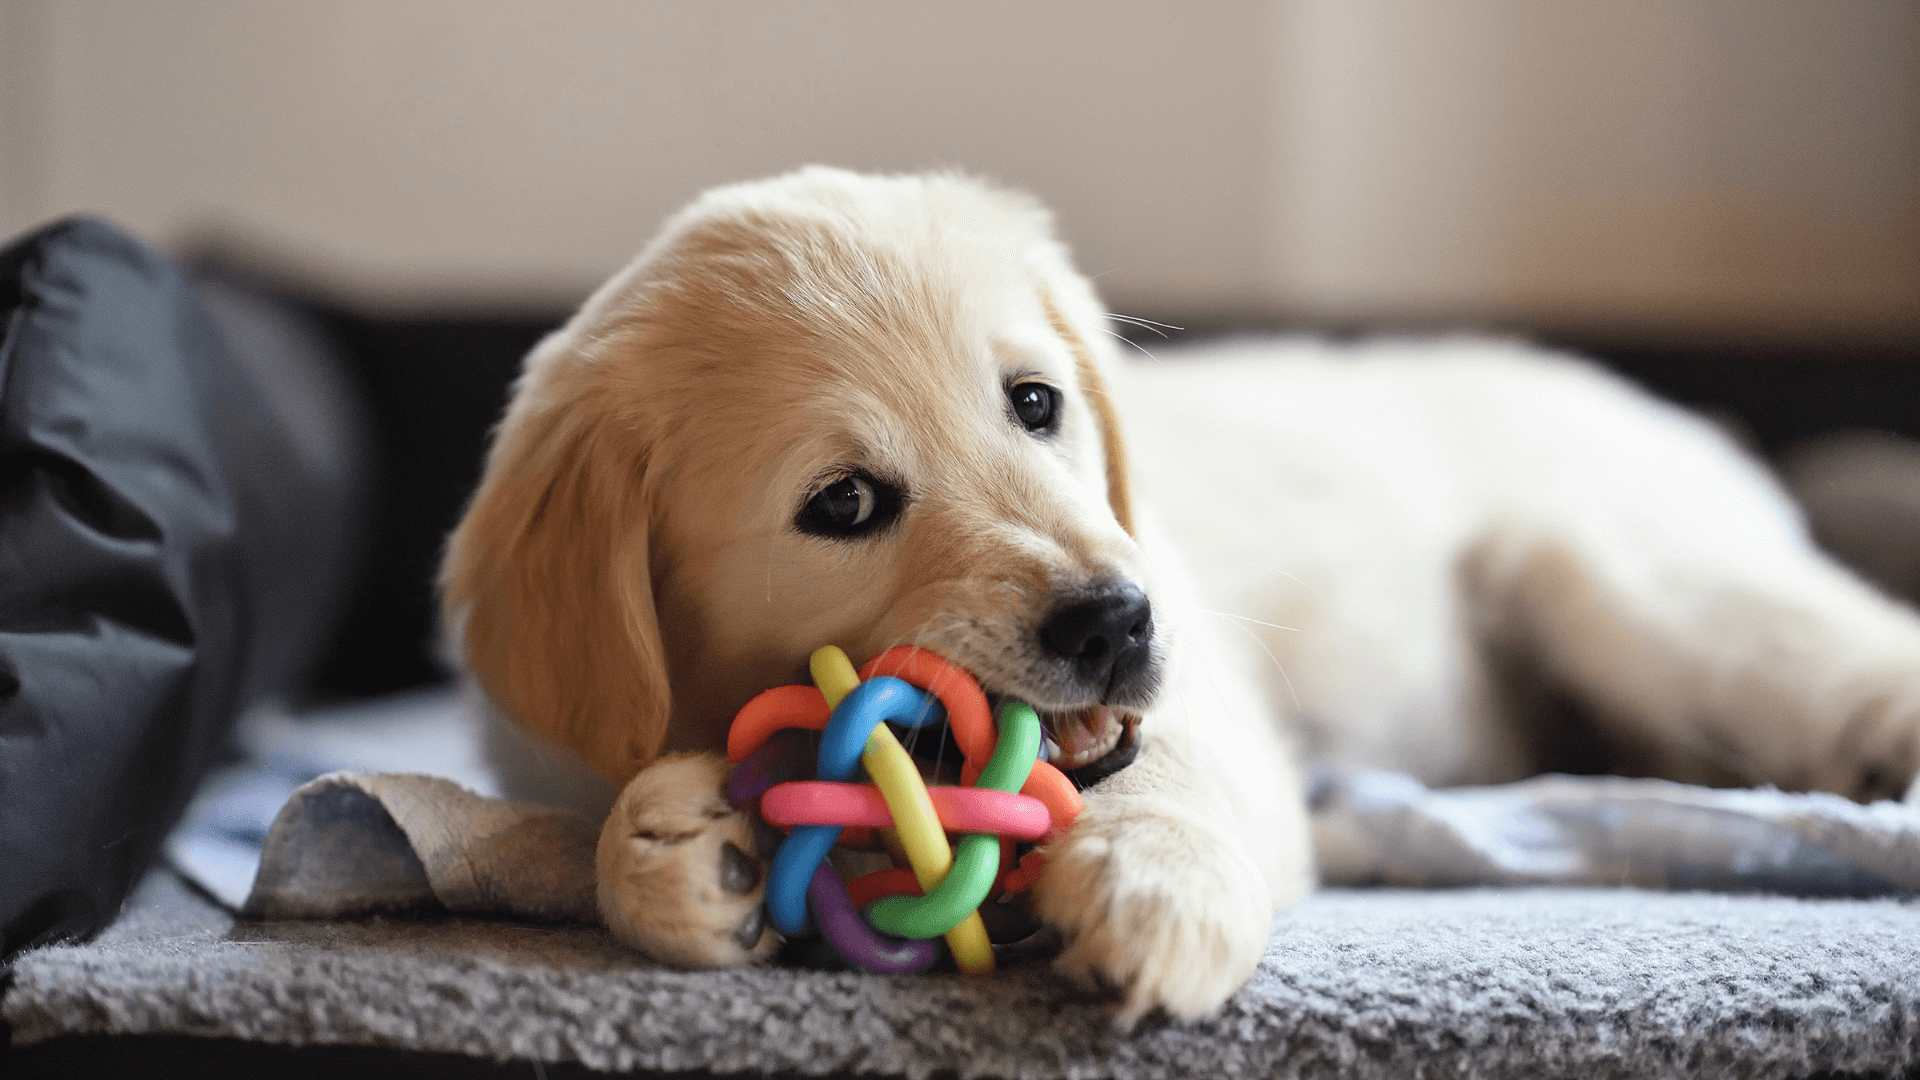 a dog playing with its pet toy